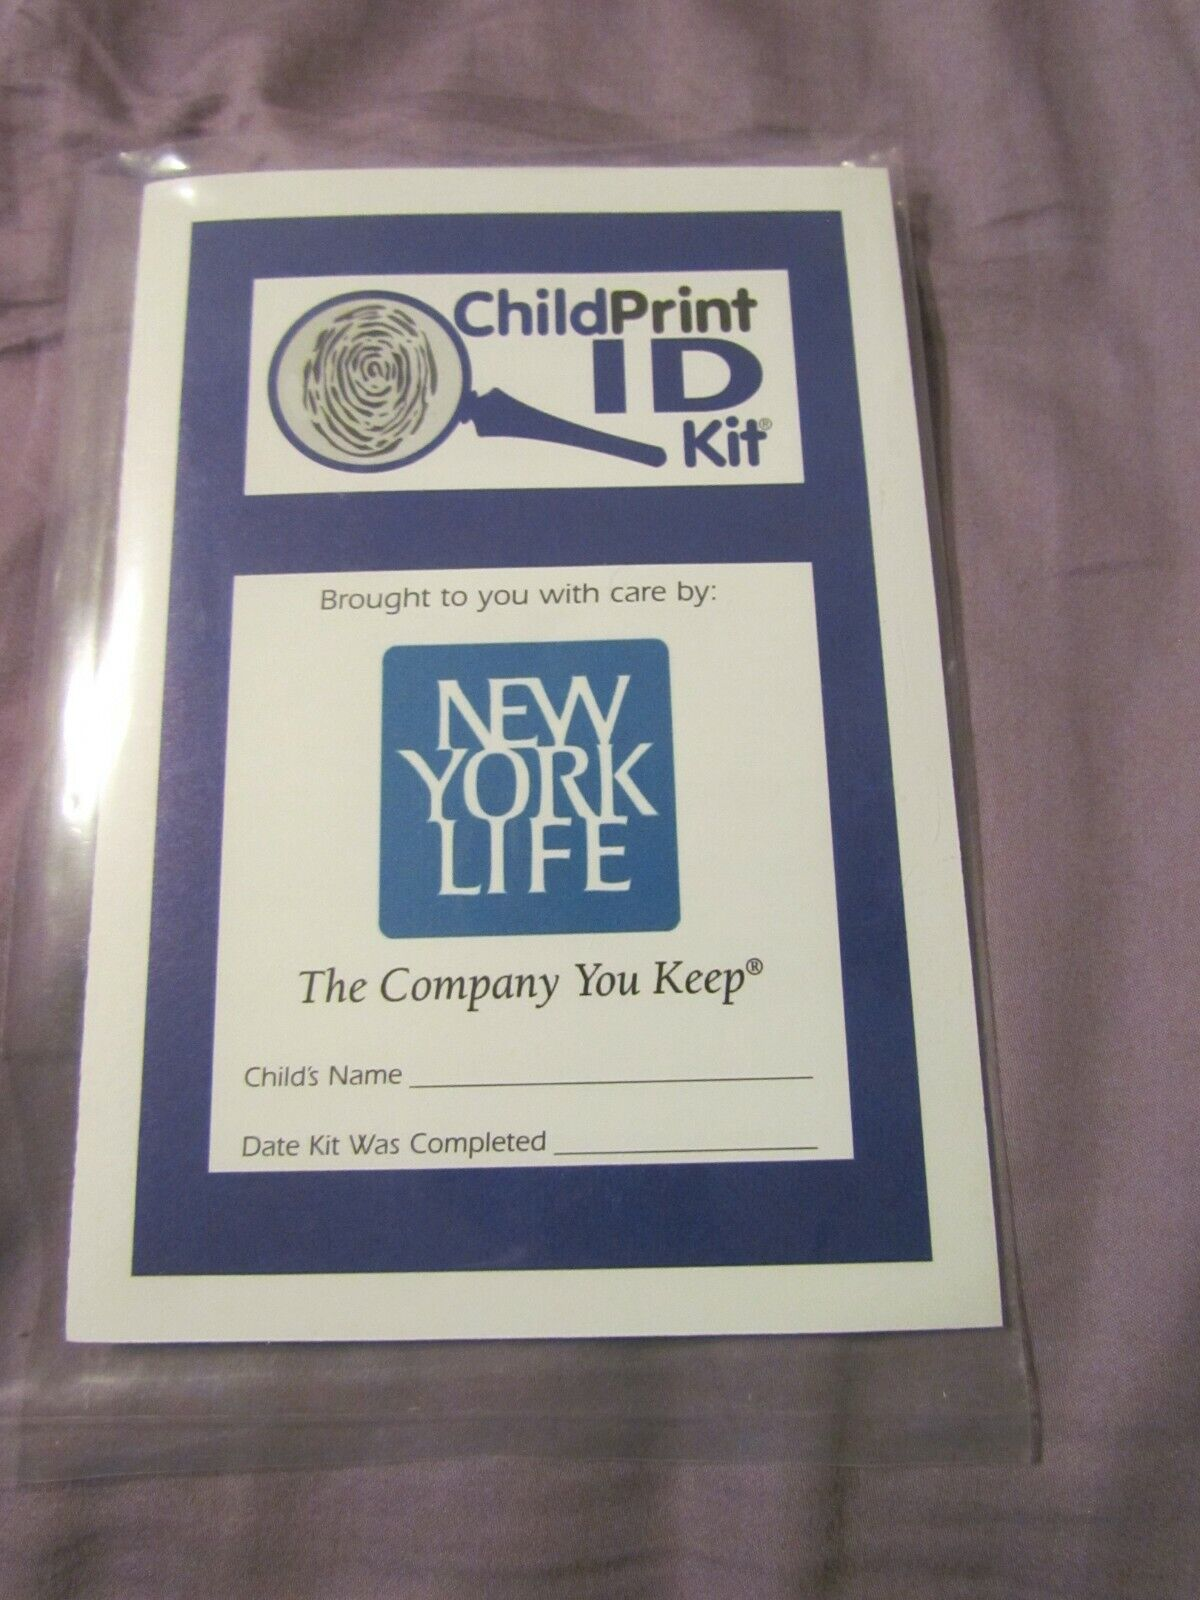 CHILDPRINT I.D. KIT A MUST-HAVE FOR THE SECURITY OF YOUR CHILD REN 911  - $0.99